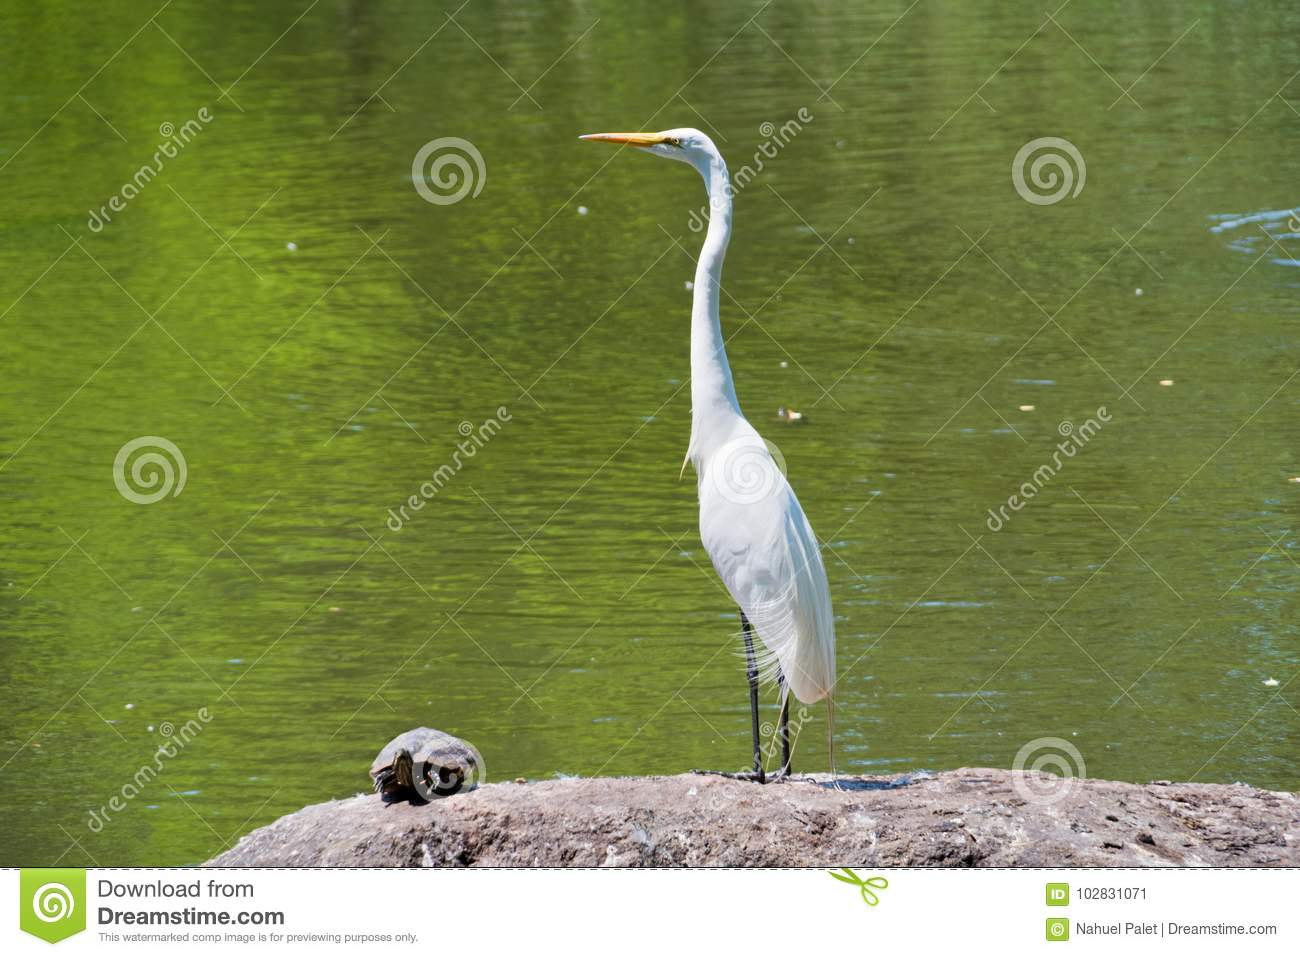 White Crane And A Turtle Standing On A Rock In A Lake Stock